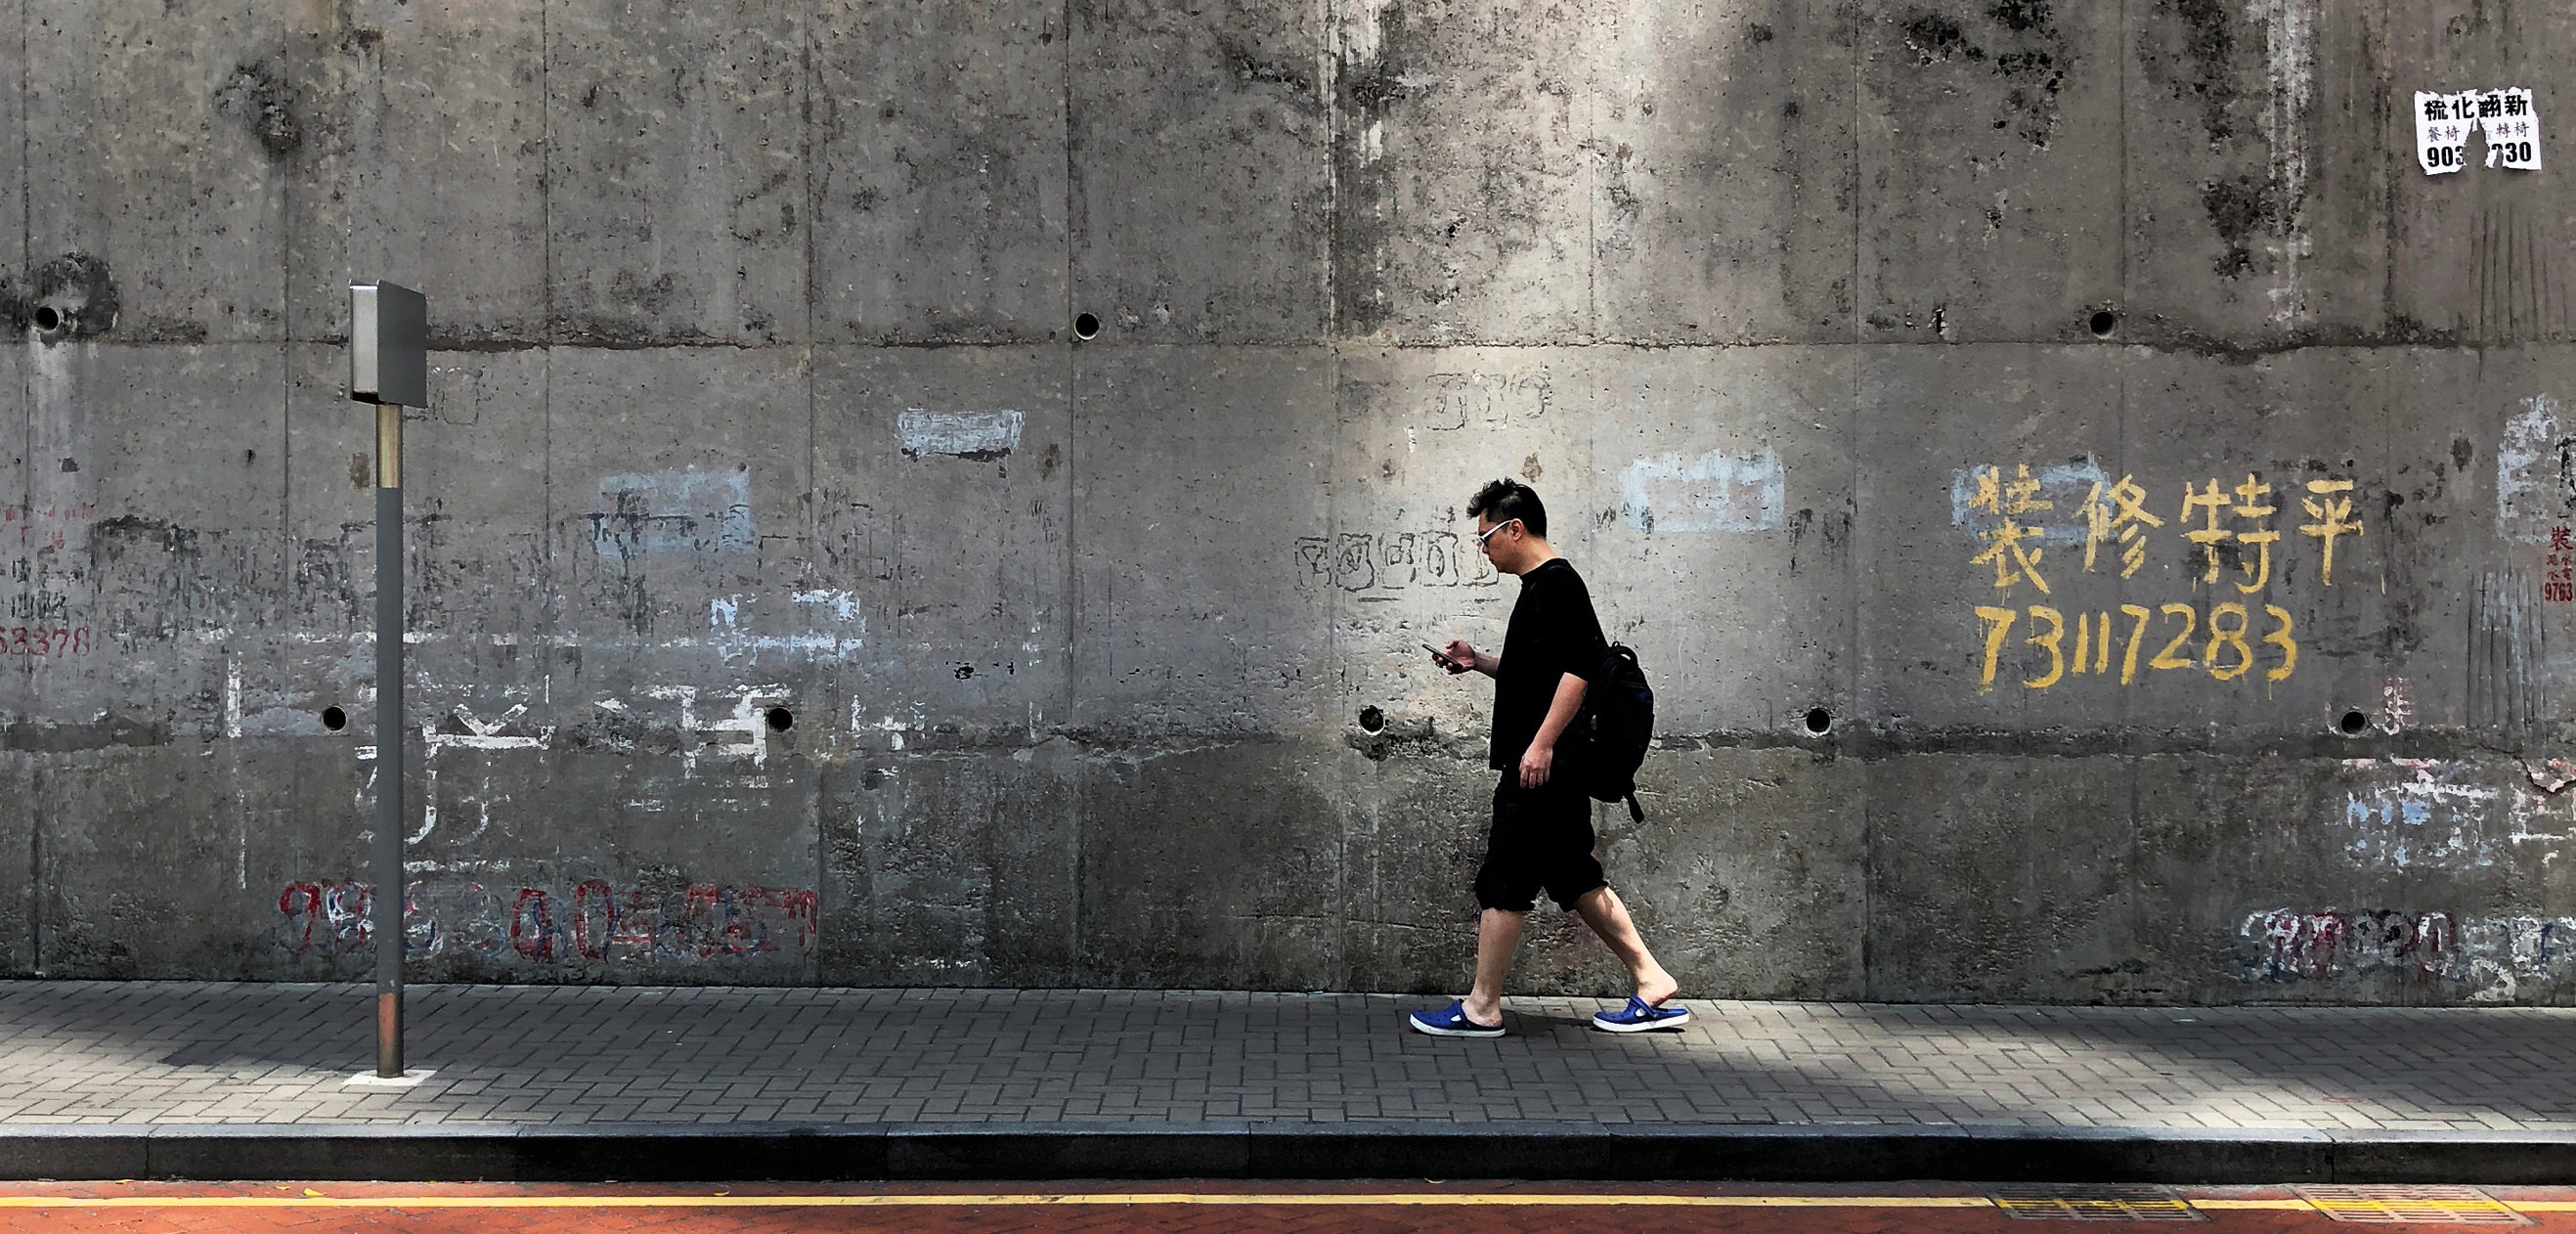 man walking on pavement using phone